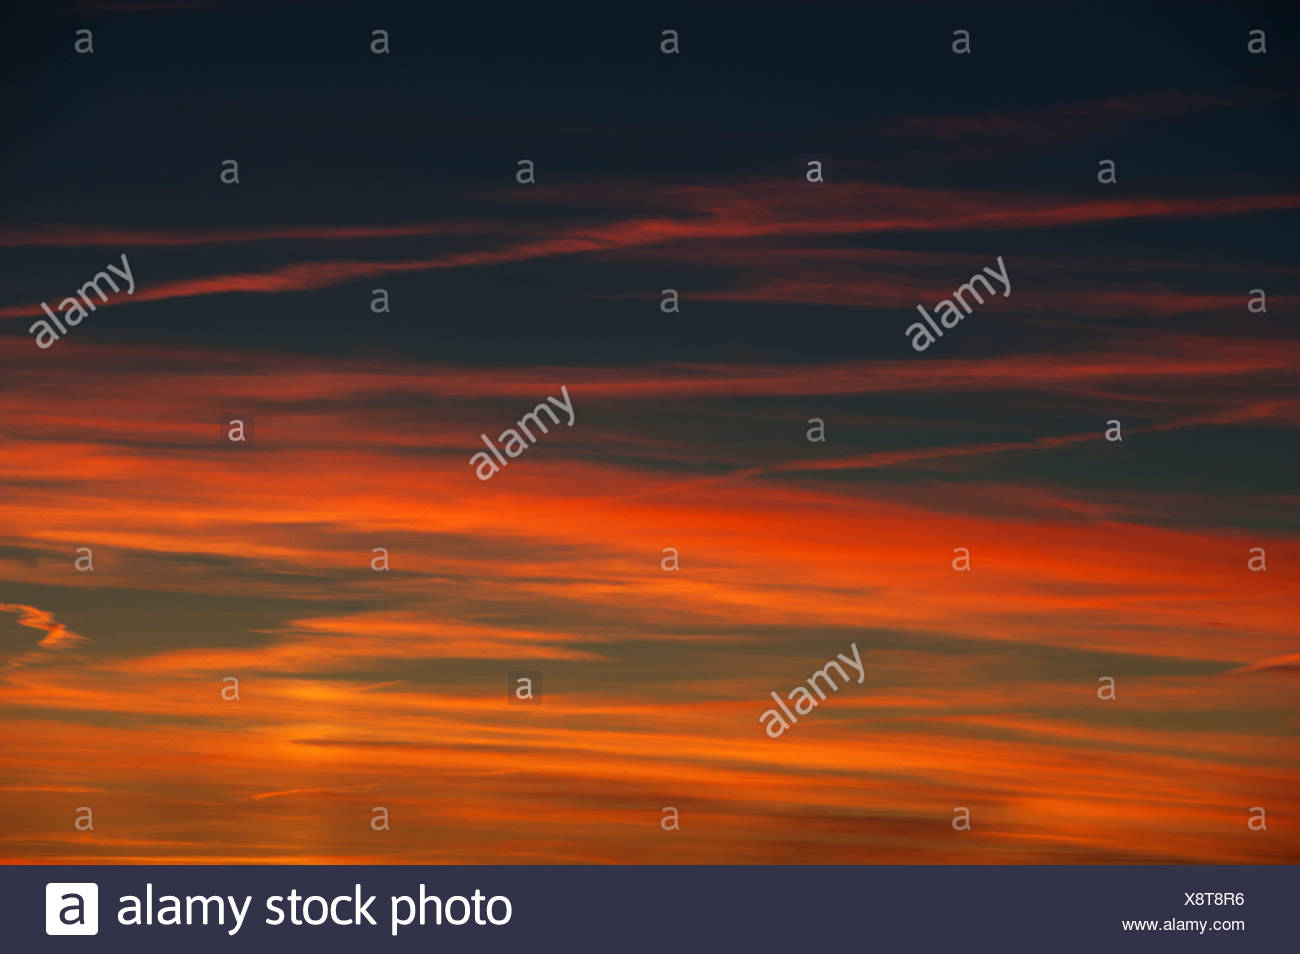 afterglow, sunset glow, red sunset, red evening sky, Emmental, empyrean, sky, canton Bern, Switzerland, sunset, sundown - Stock Image